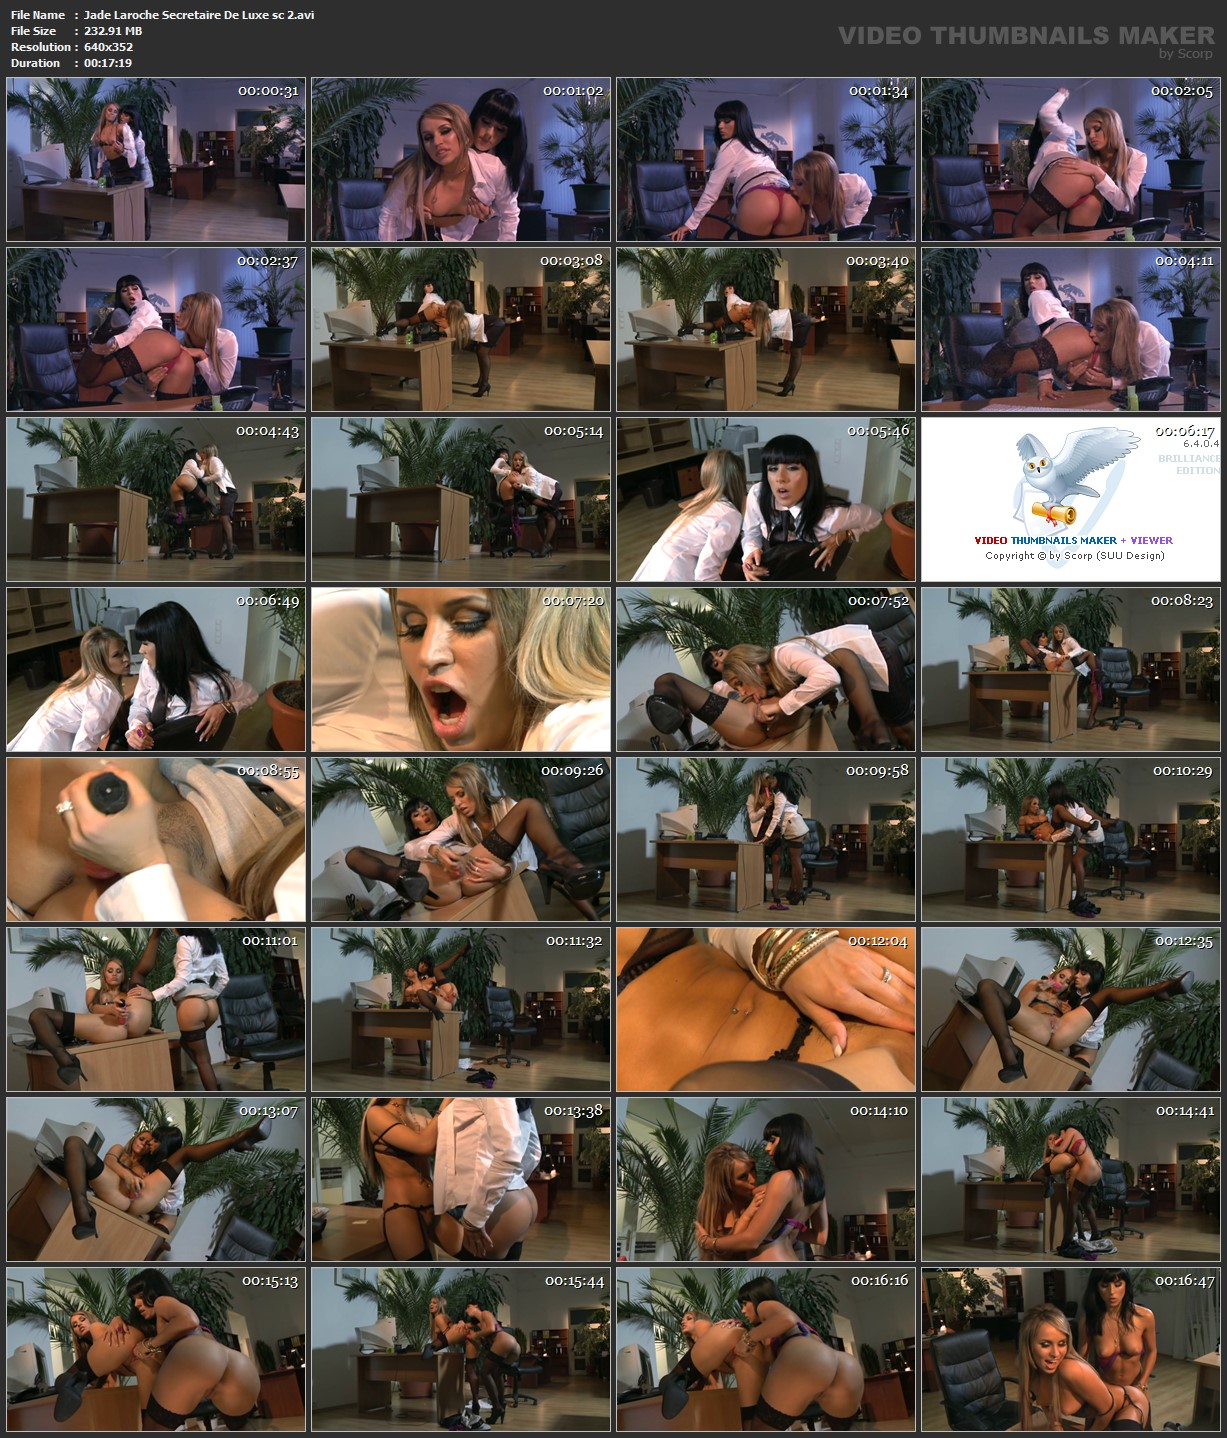 Thepiratebay porn clips hardcore glamour pussys